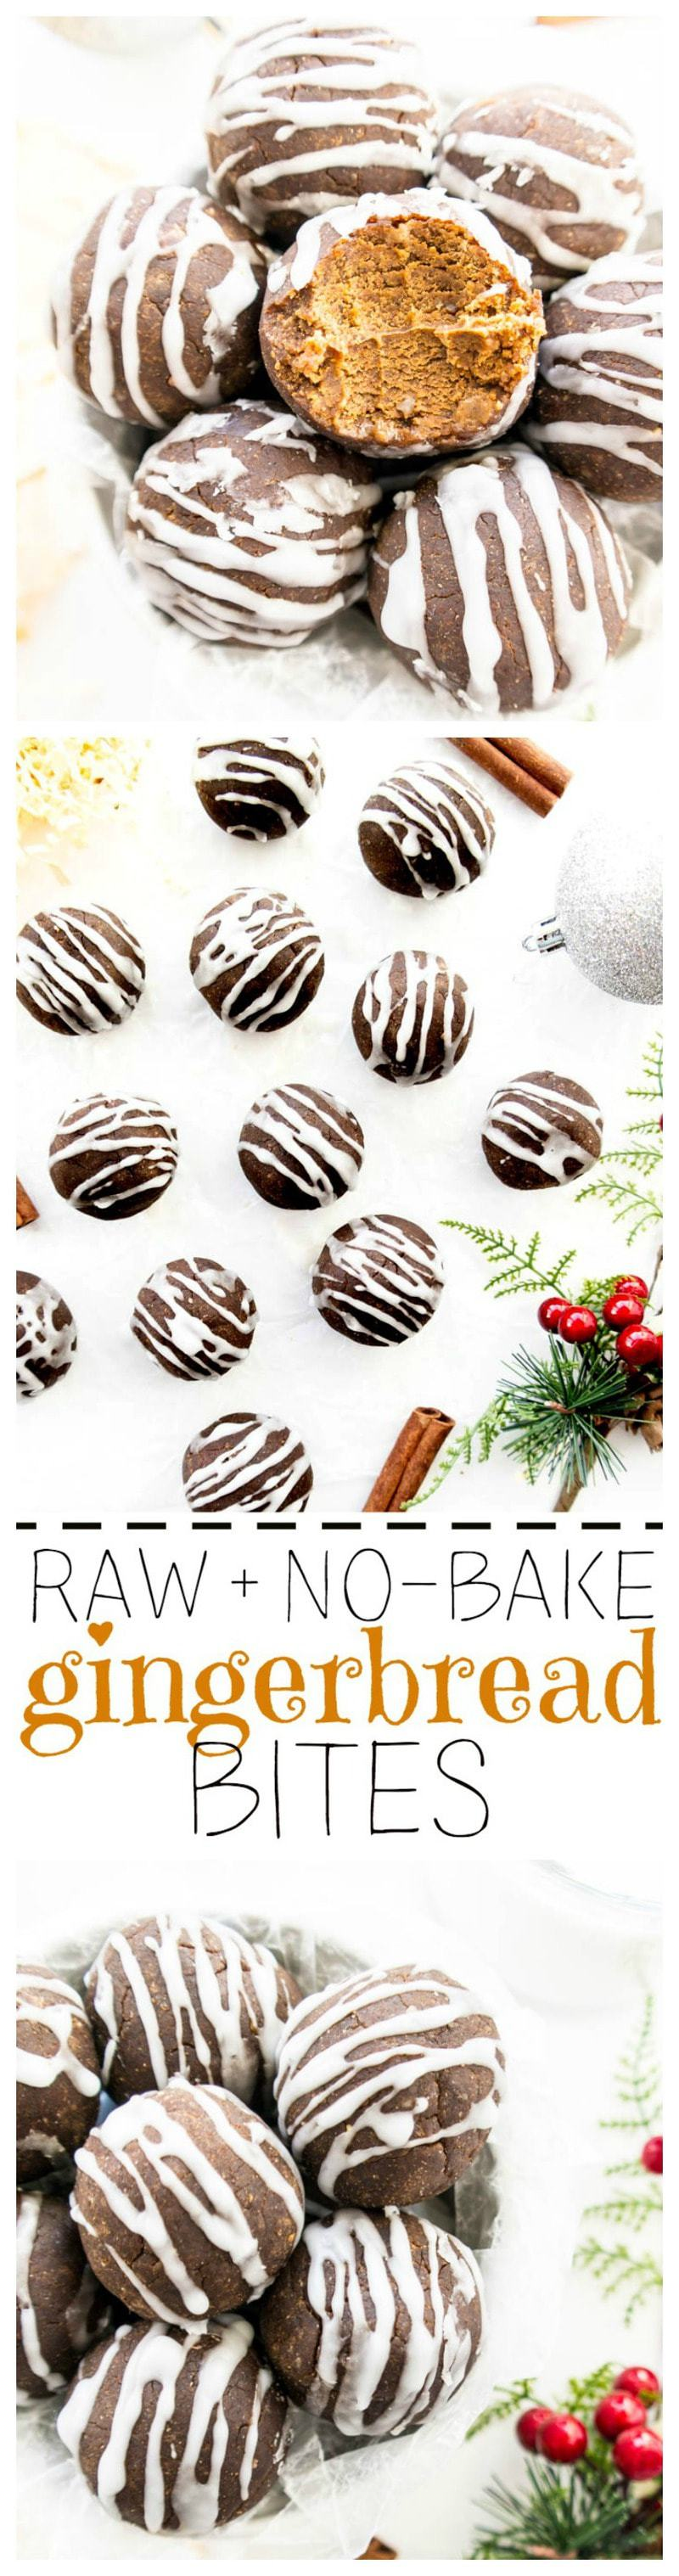 Raw Gingerbread No Bake Bites. Vegan, Gluten Free, Oil Free. Healthier sweet gingerbread treats with white icing and lots of gingerbread flavor. No equipment needed! Higher protein option too. #vegan #protein #balls #bites